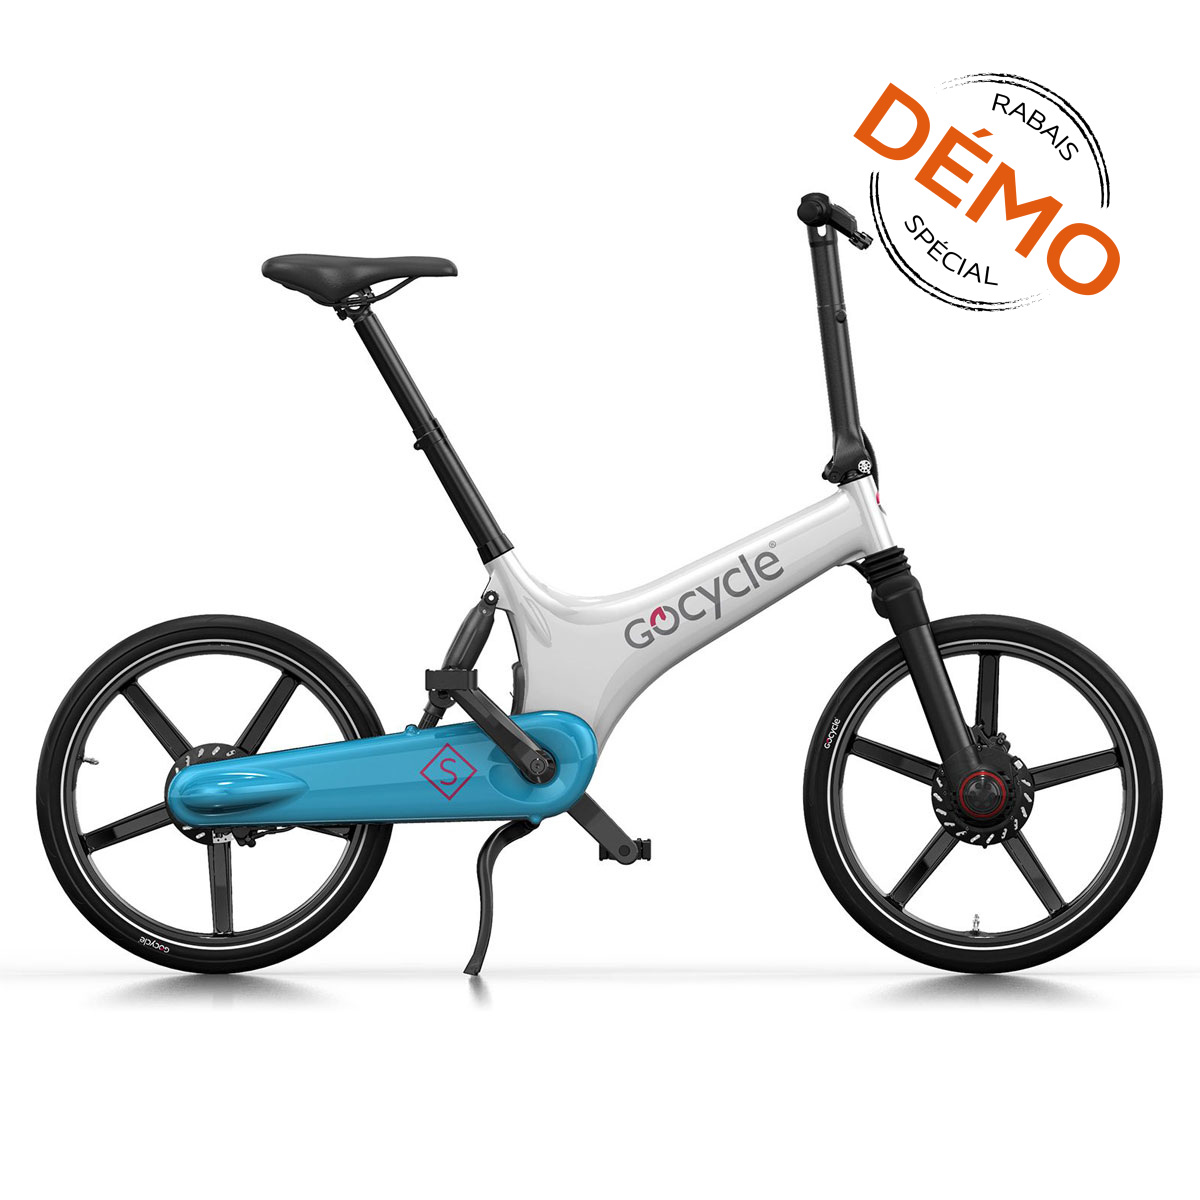 GOCYCLE GS BLANC/BLEU PALE